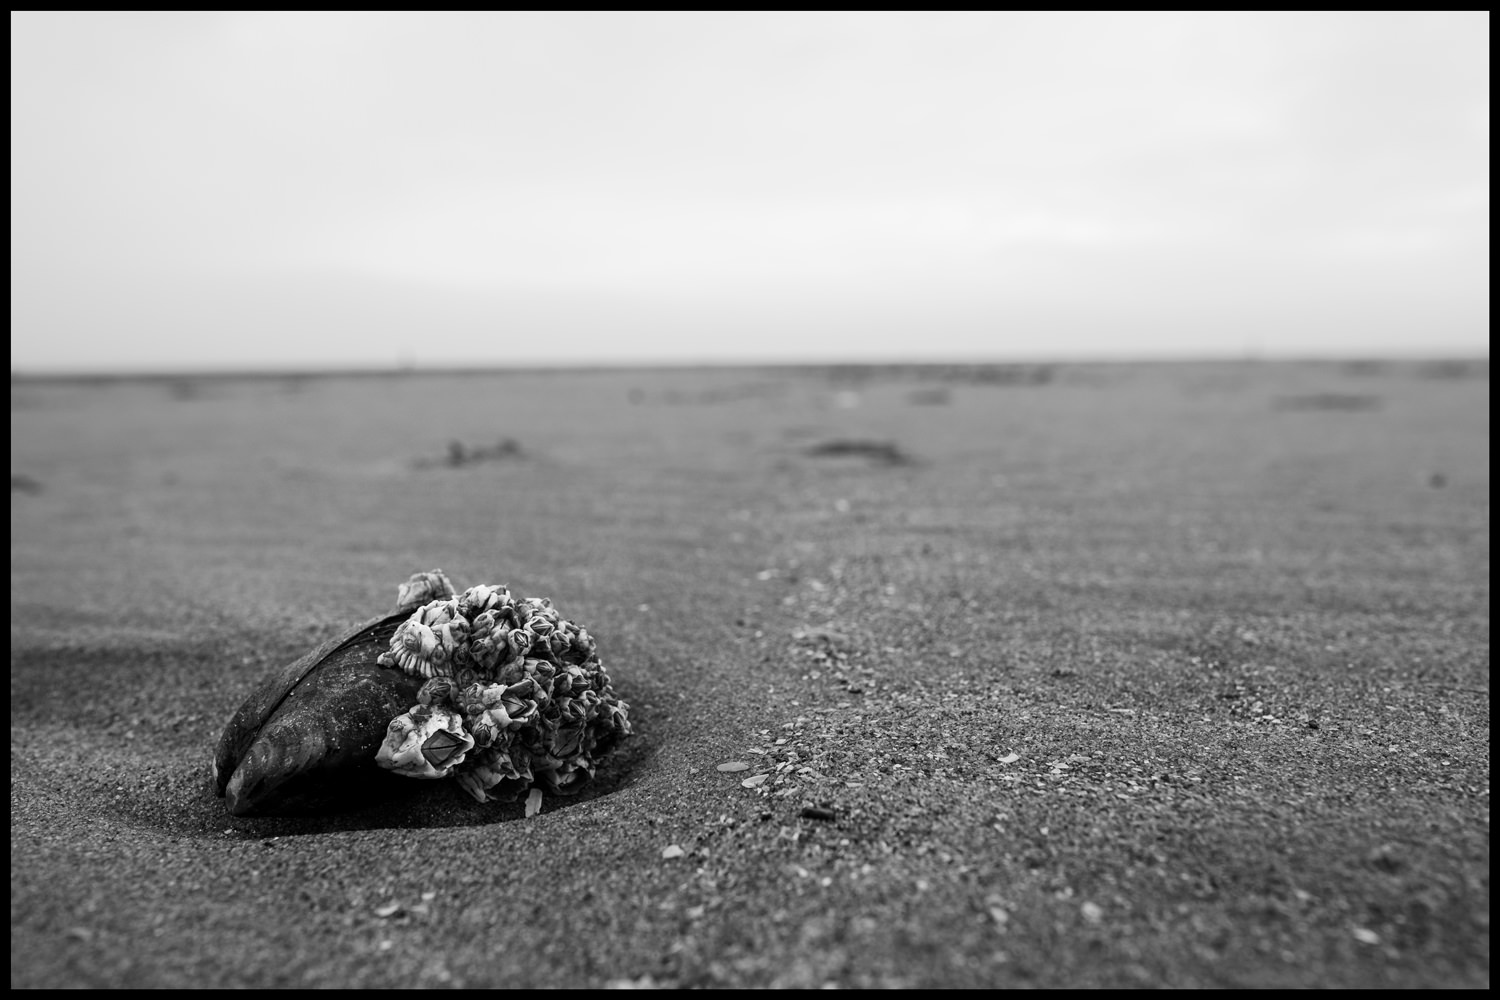 A closeup of a mussel on the sand. The mussel is covered in barnacles